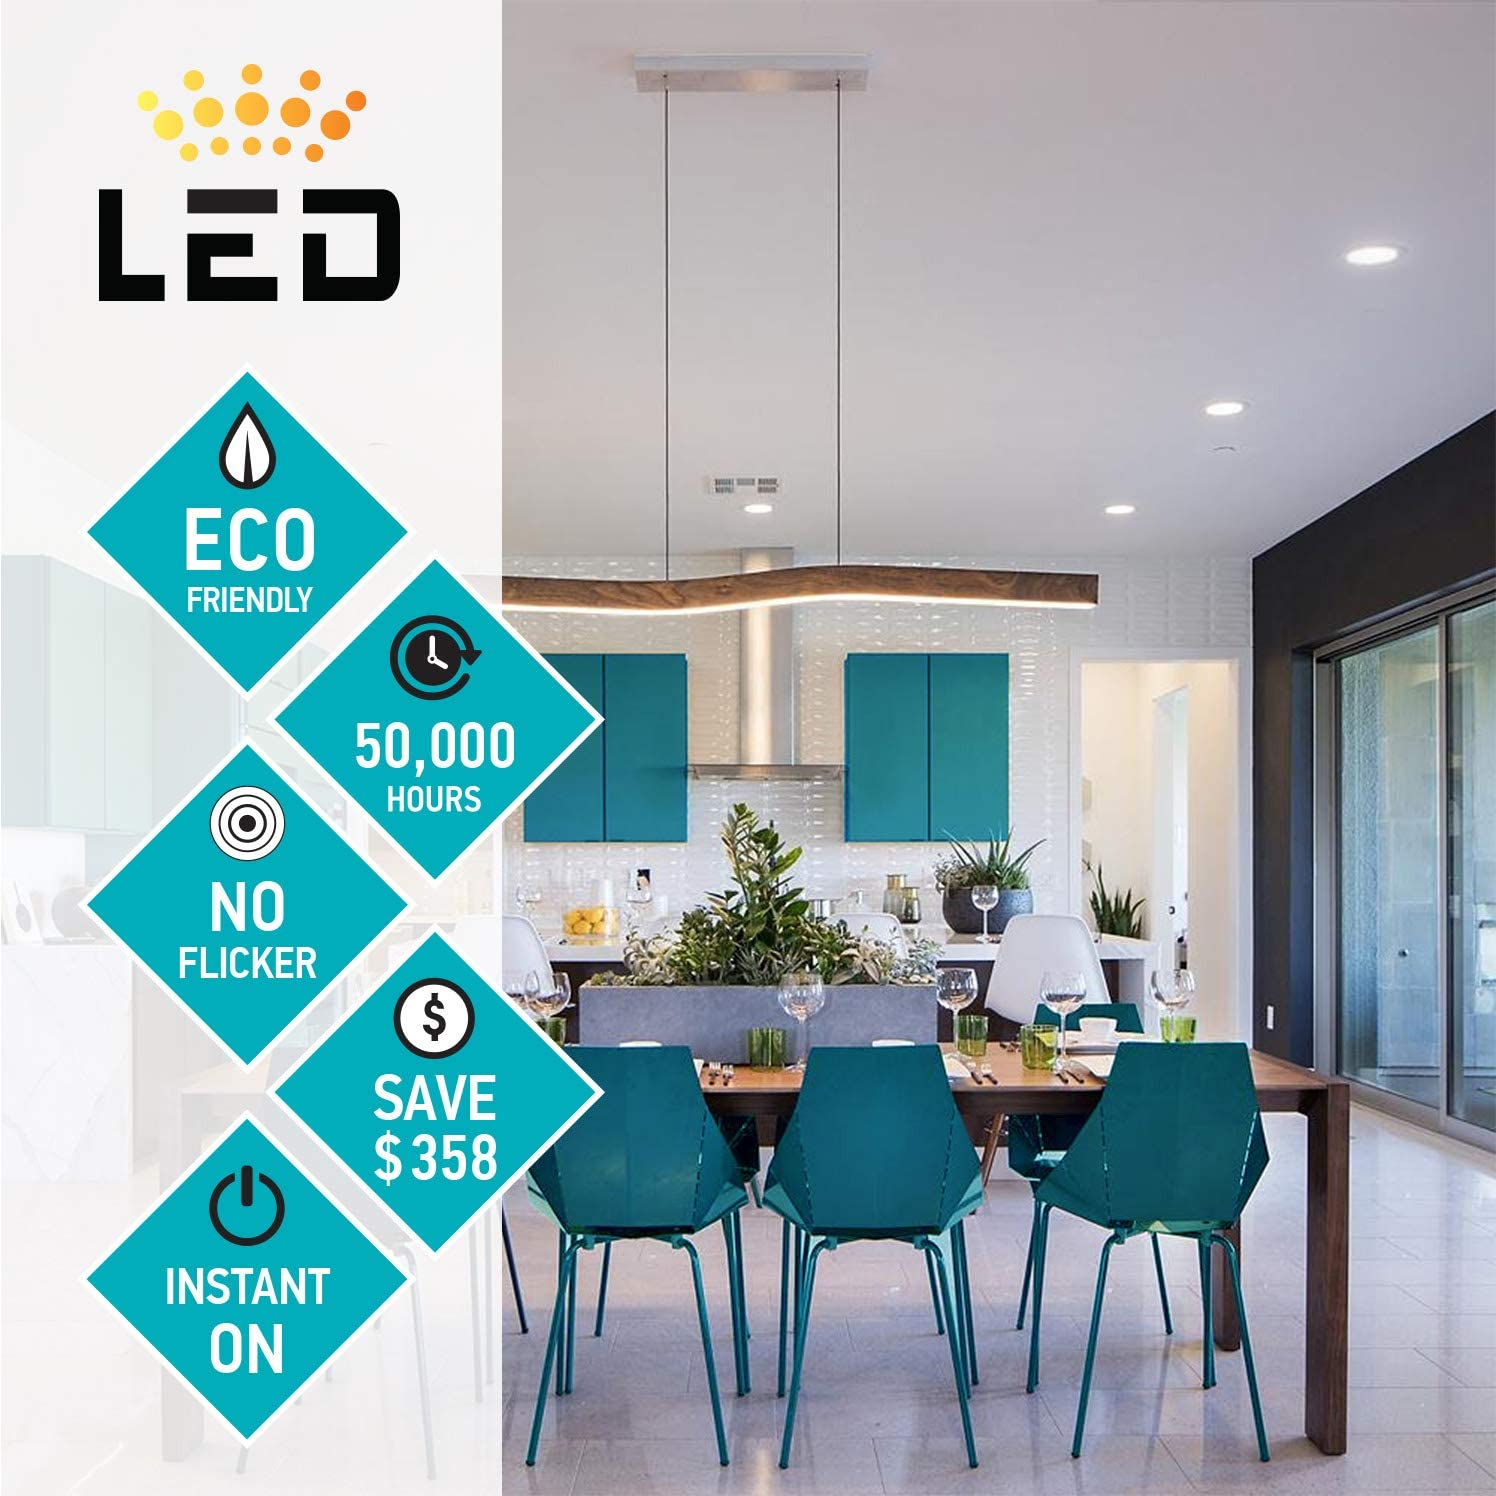 4 Pack 15W IC Rated 3000K Warm Light 1125 Lm LUXTER Dimmable 6 inch Ultra-Thin Round LED Recessed Panel Light with Junction Box 80 Watt Repl. No Can Needed ETL /& Energy Star Listed